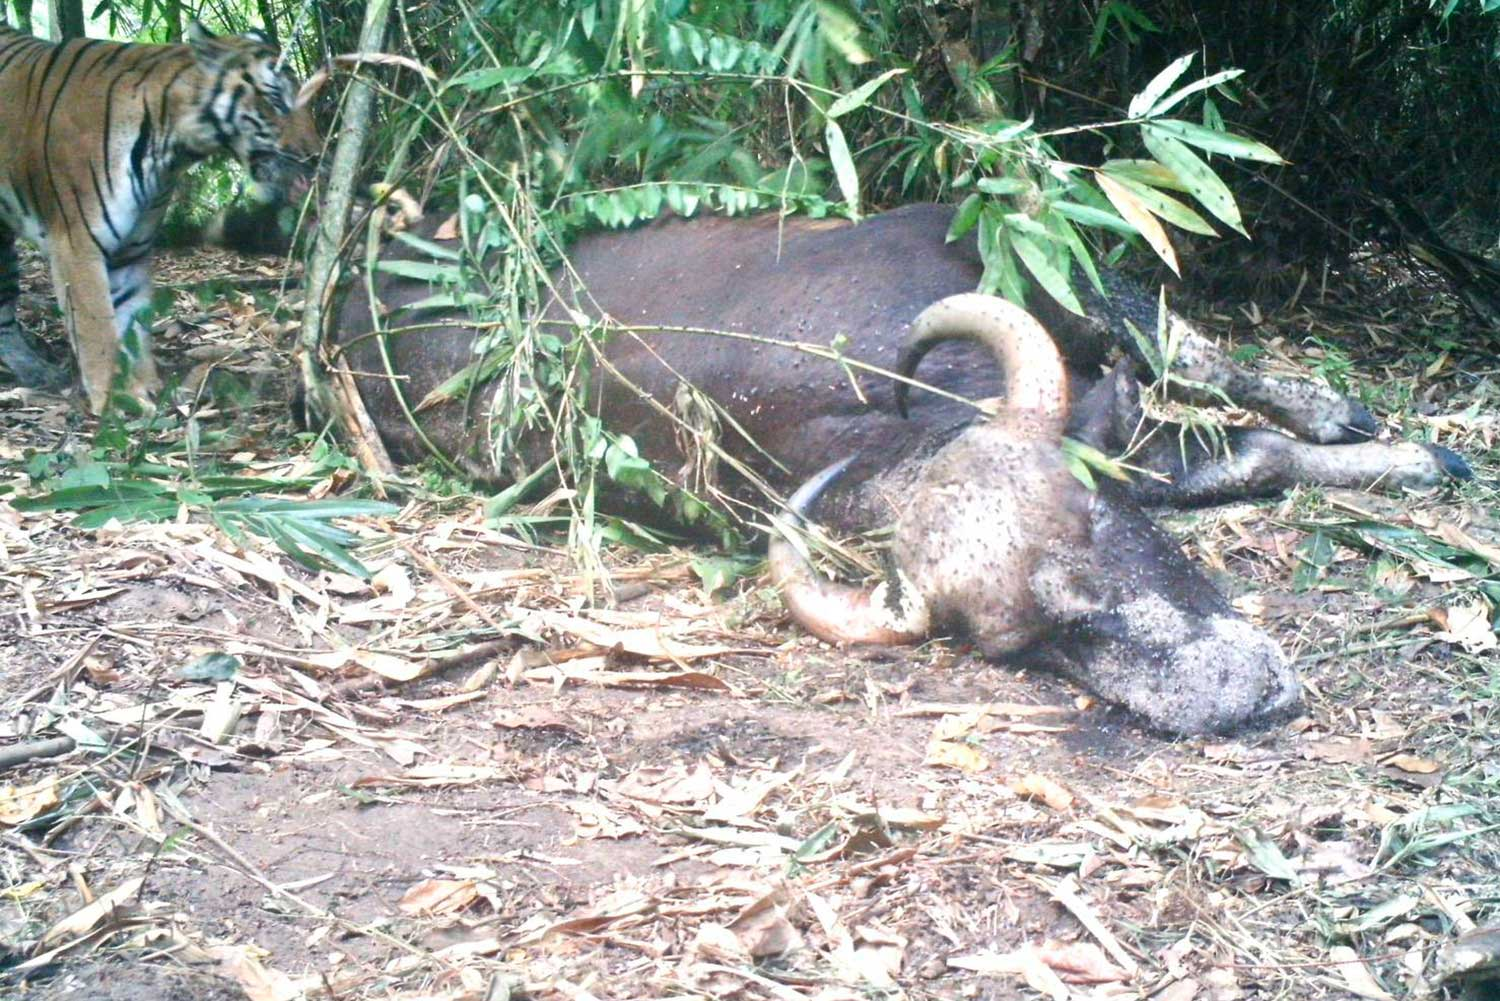 A male Bengal tiger, left, approaches the carcass of a female gaur it killed in Mae Wong National Park. The dead gaur was found on Sunday. (Photo from a camera trap)